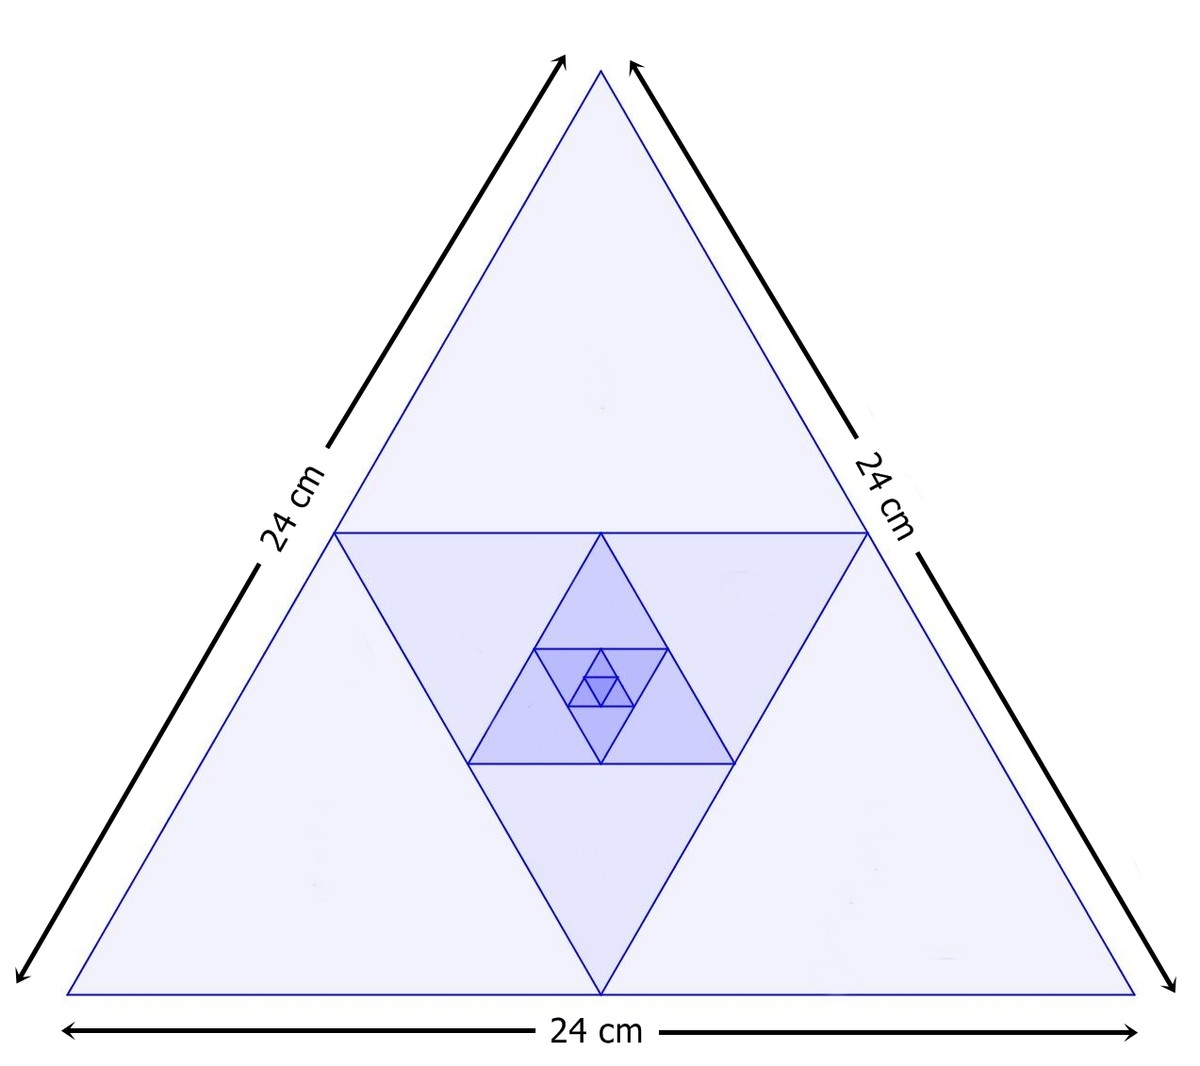 arithmetic and geometric progressions problem solving  one side of an equilateral triangle is 24 cm the midpoints of its sides are joined to form another triangle whose midpoints in turn are joined to form